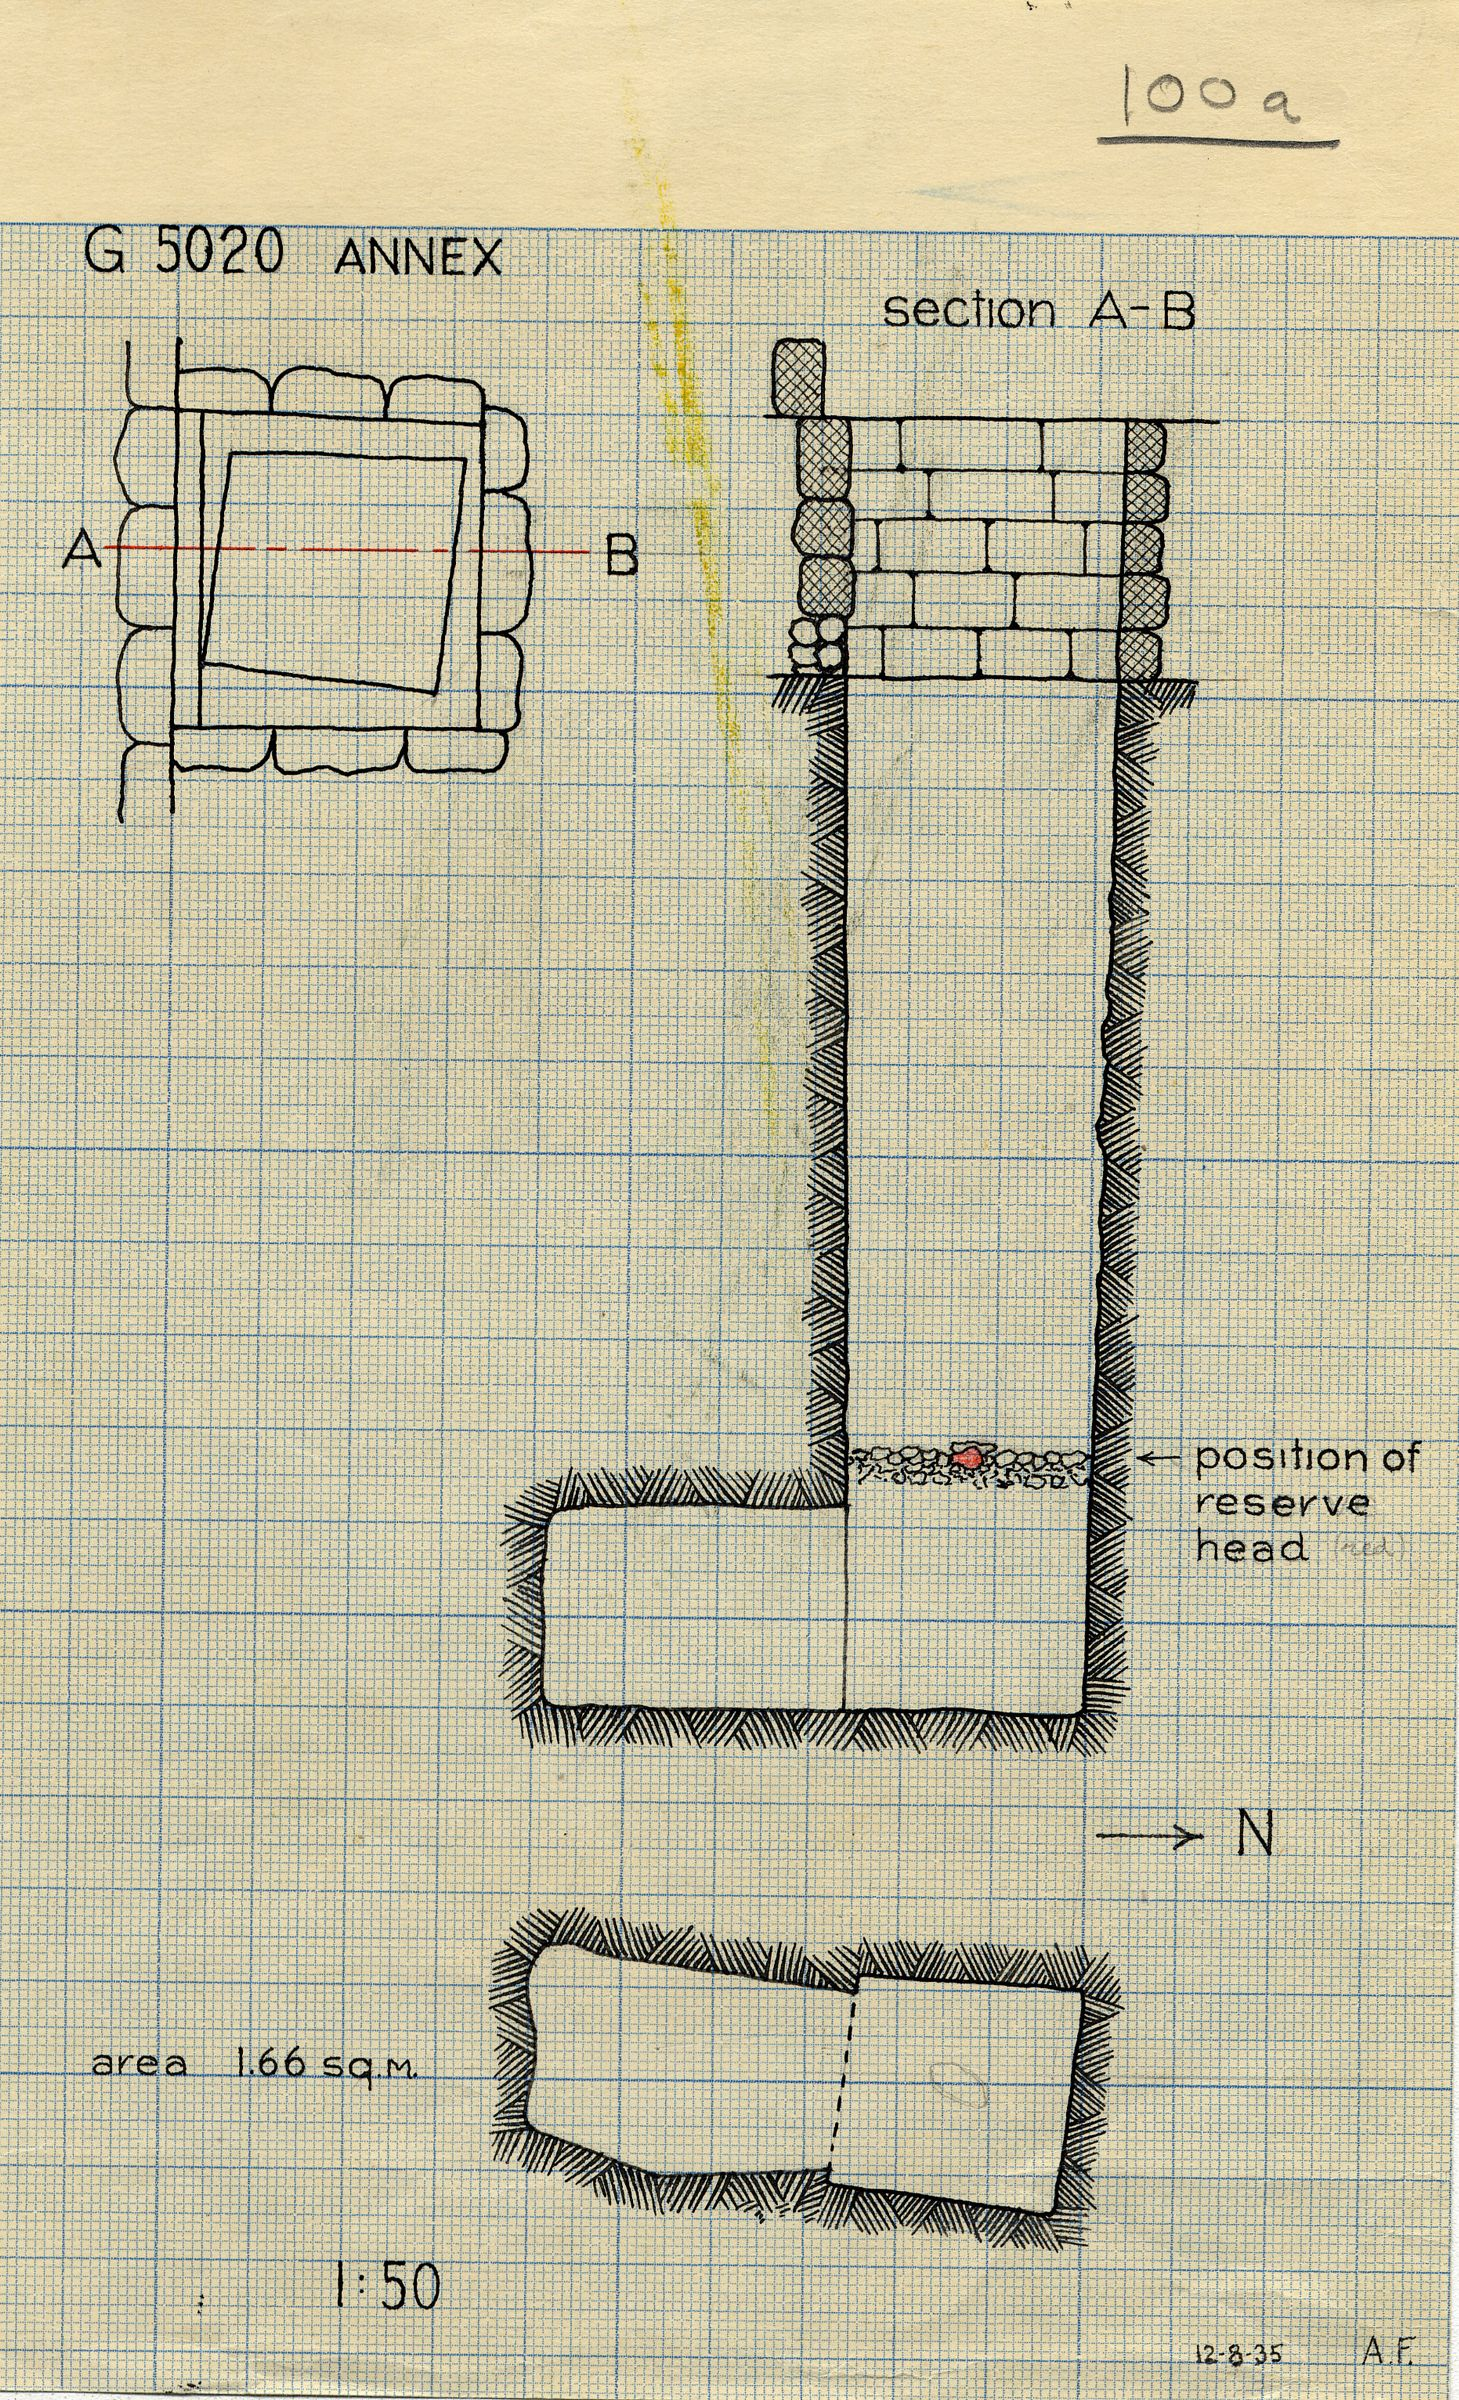 Maps and plans: G 5020-Annex, Shaft A